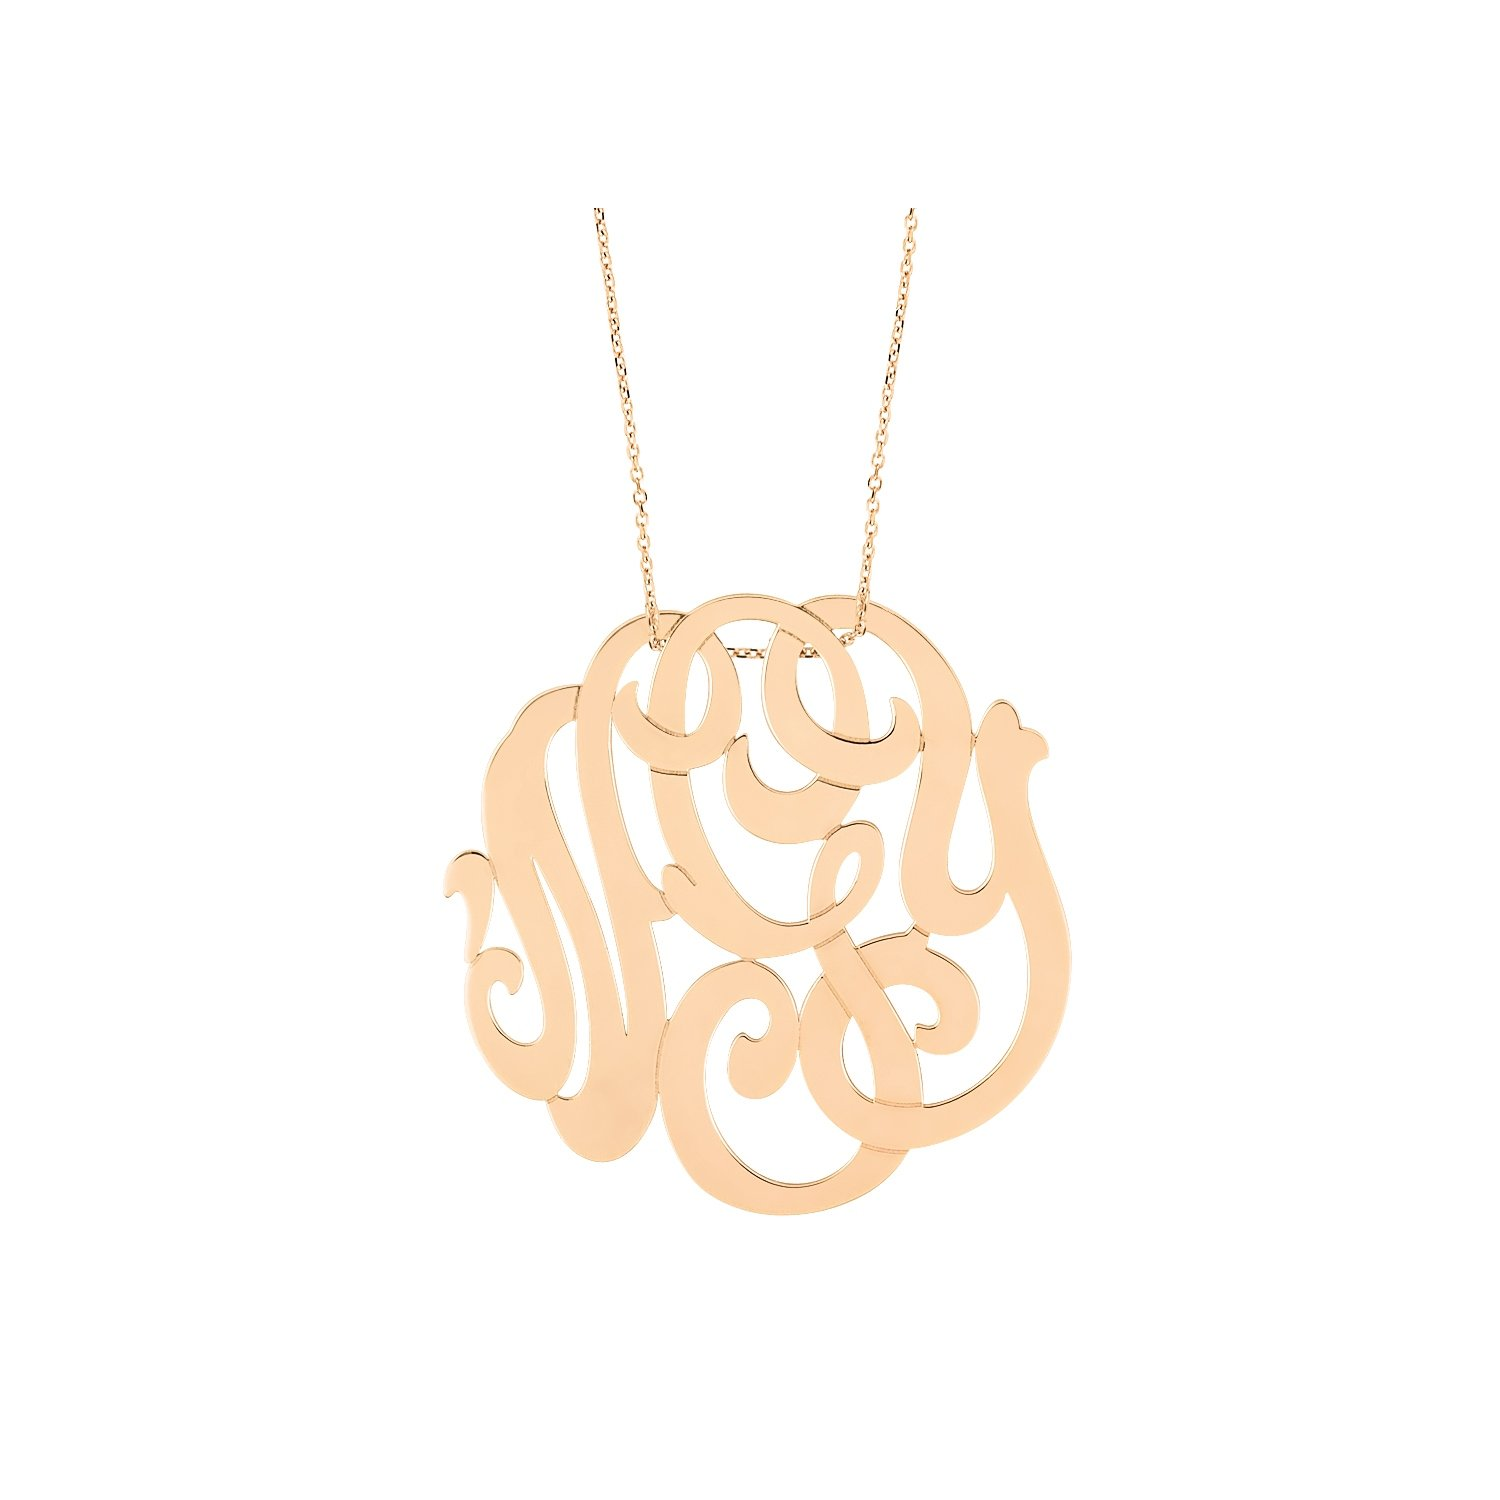 Collier GYNETTE NY MONOGRAMS en or blanc